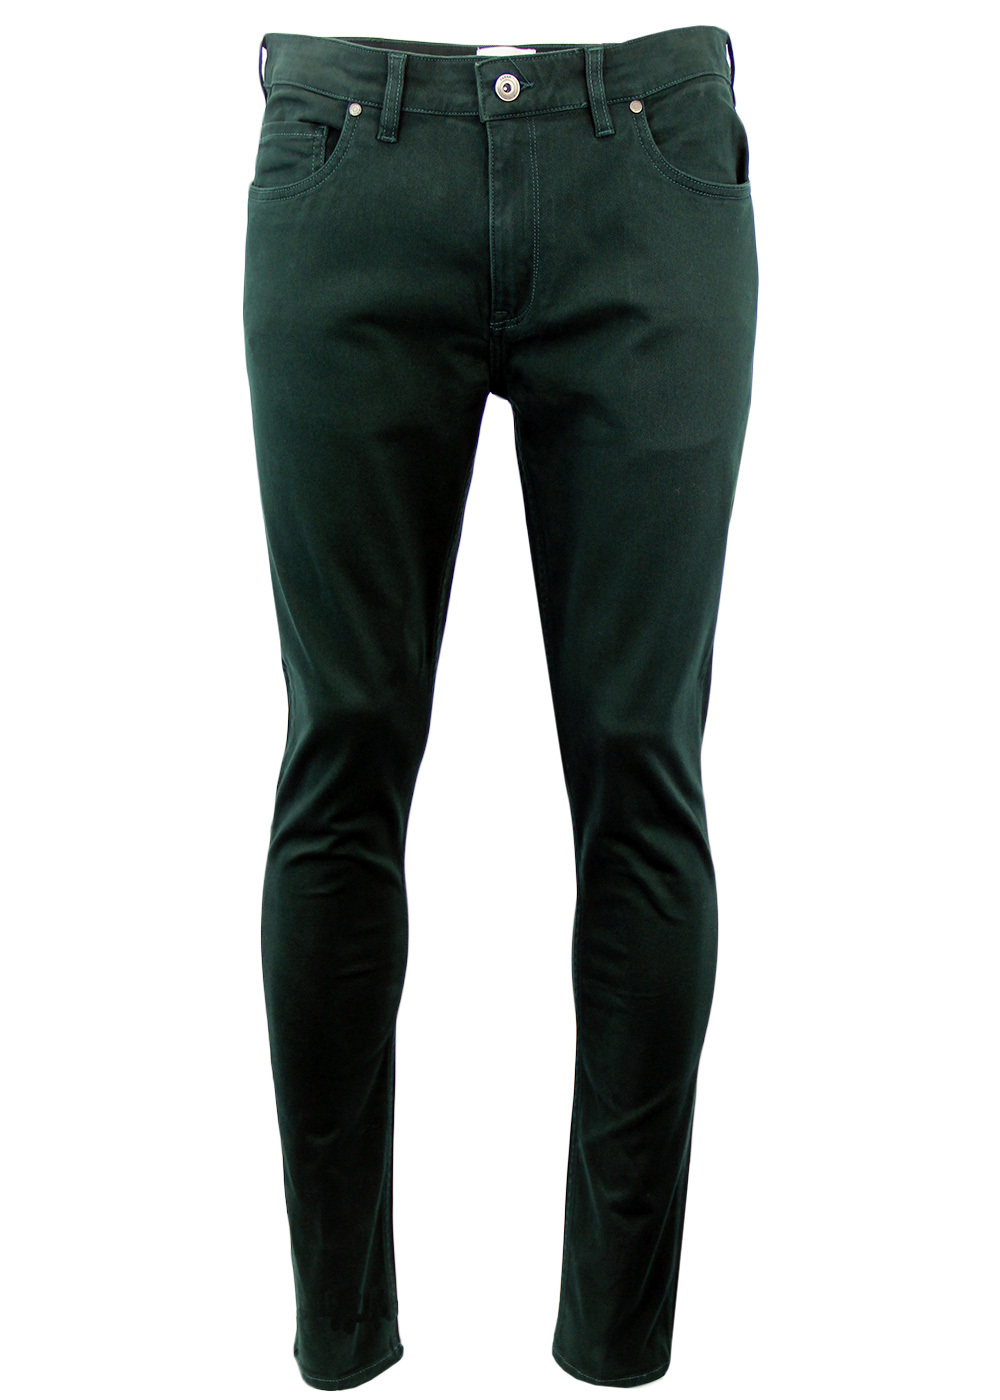 Drake FARAH Retro Mod Slim Stretch Twill Trousers